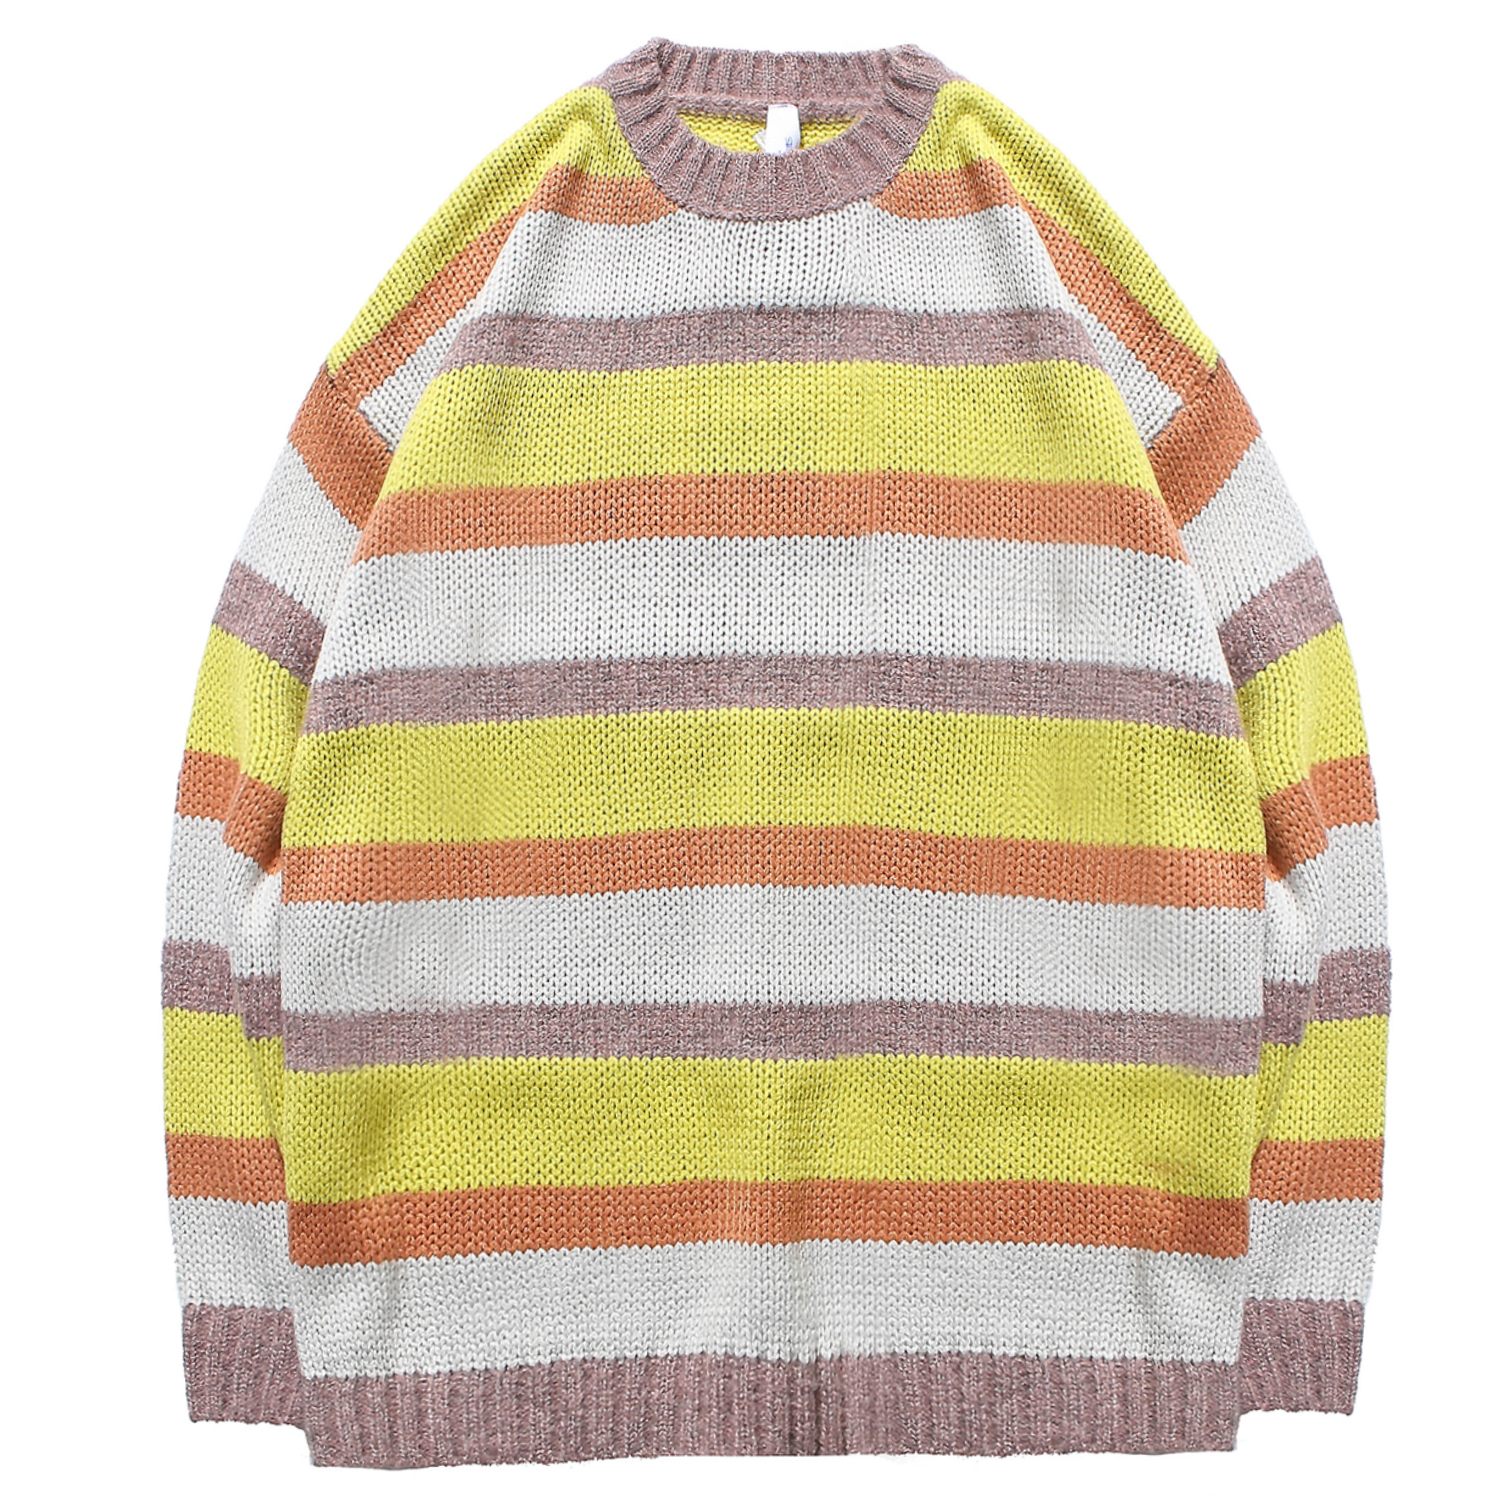 Men's Sweater Fine Knitted Stripe Jumpers Pullover Stitching Colors Crewneck Tops Comfort For Young Boys Outdoor Autumn Winter